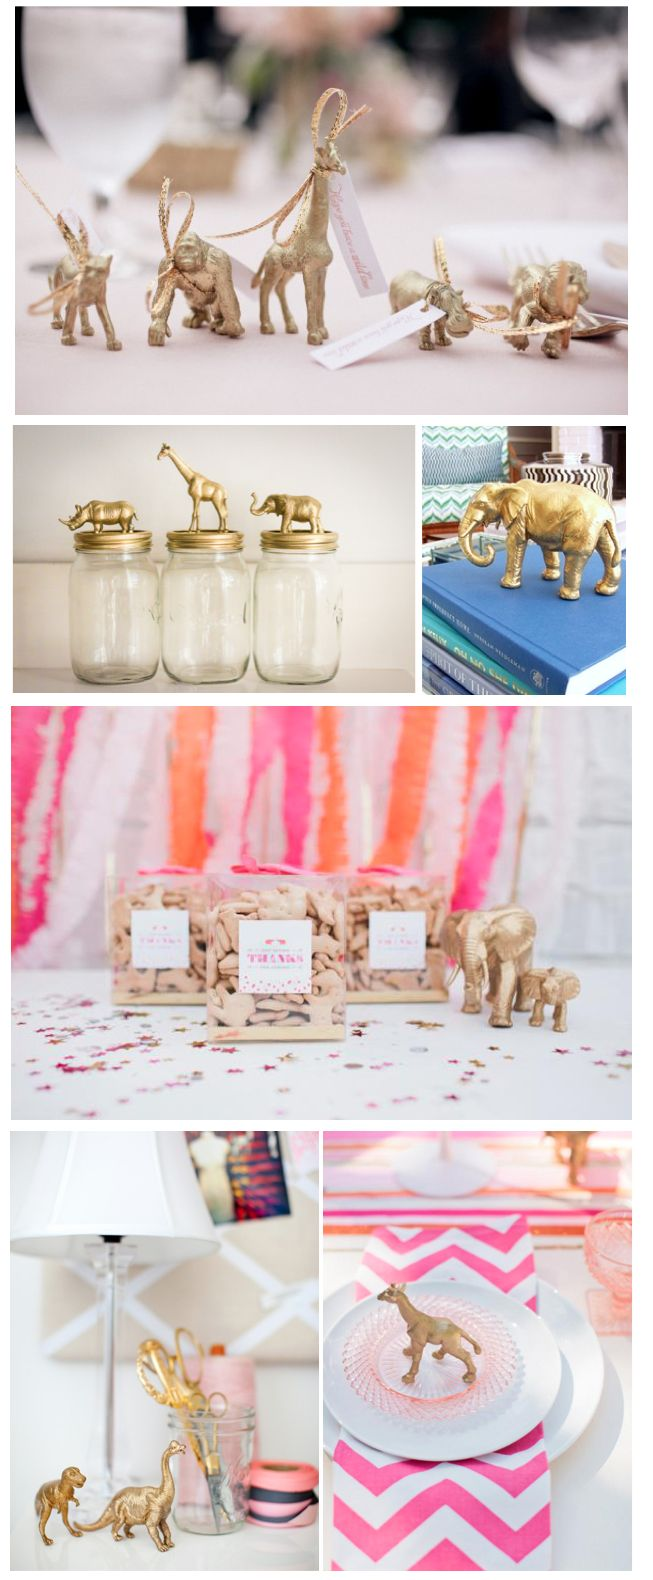 I have no idea why I would ever do this, but metallic t-rexes everywhere.... DIY Metallic Gold Animal Figurines